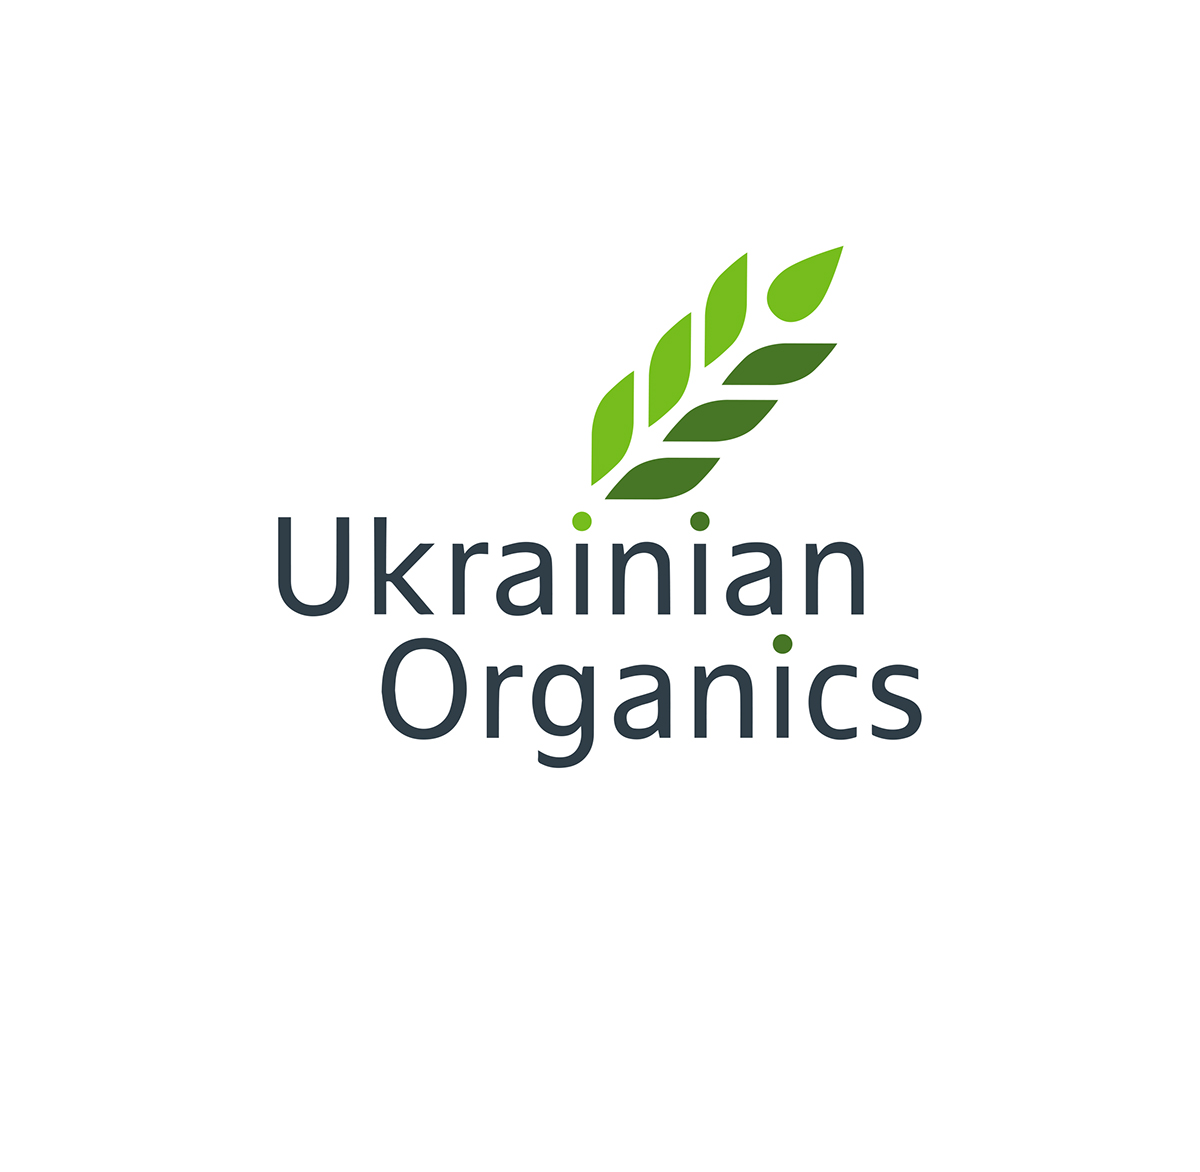 logo for the company producer of organic fertilizers on Behance